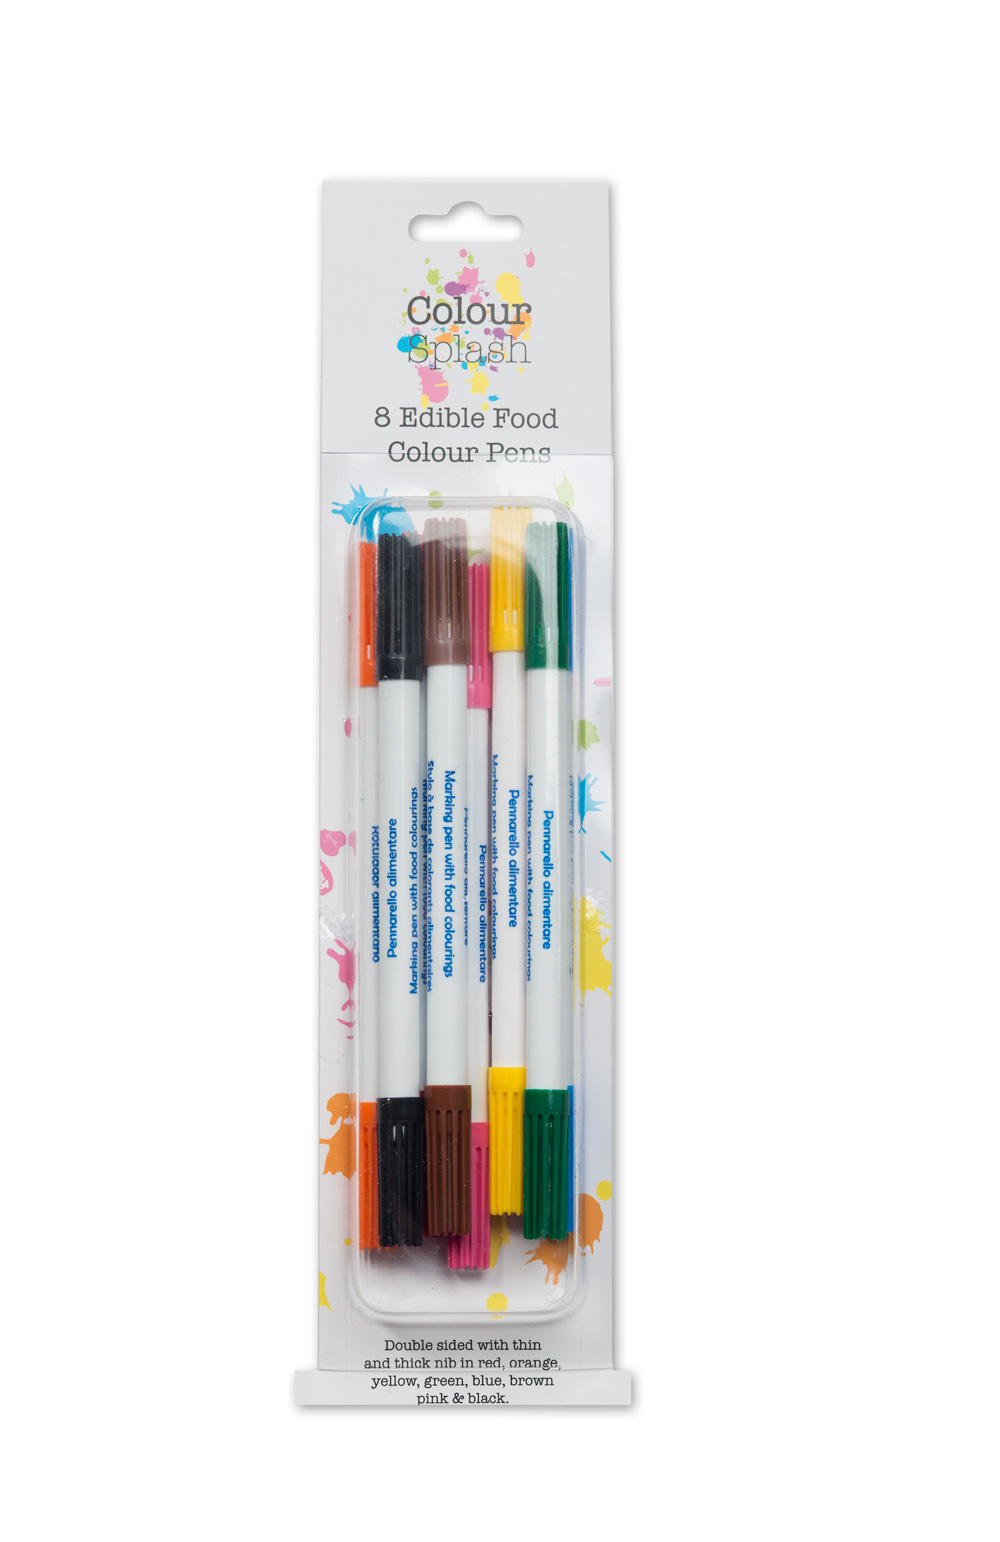 Easy baking; 8 x coloured food writing pens for cookies